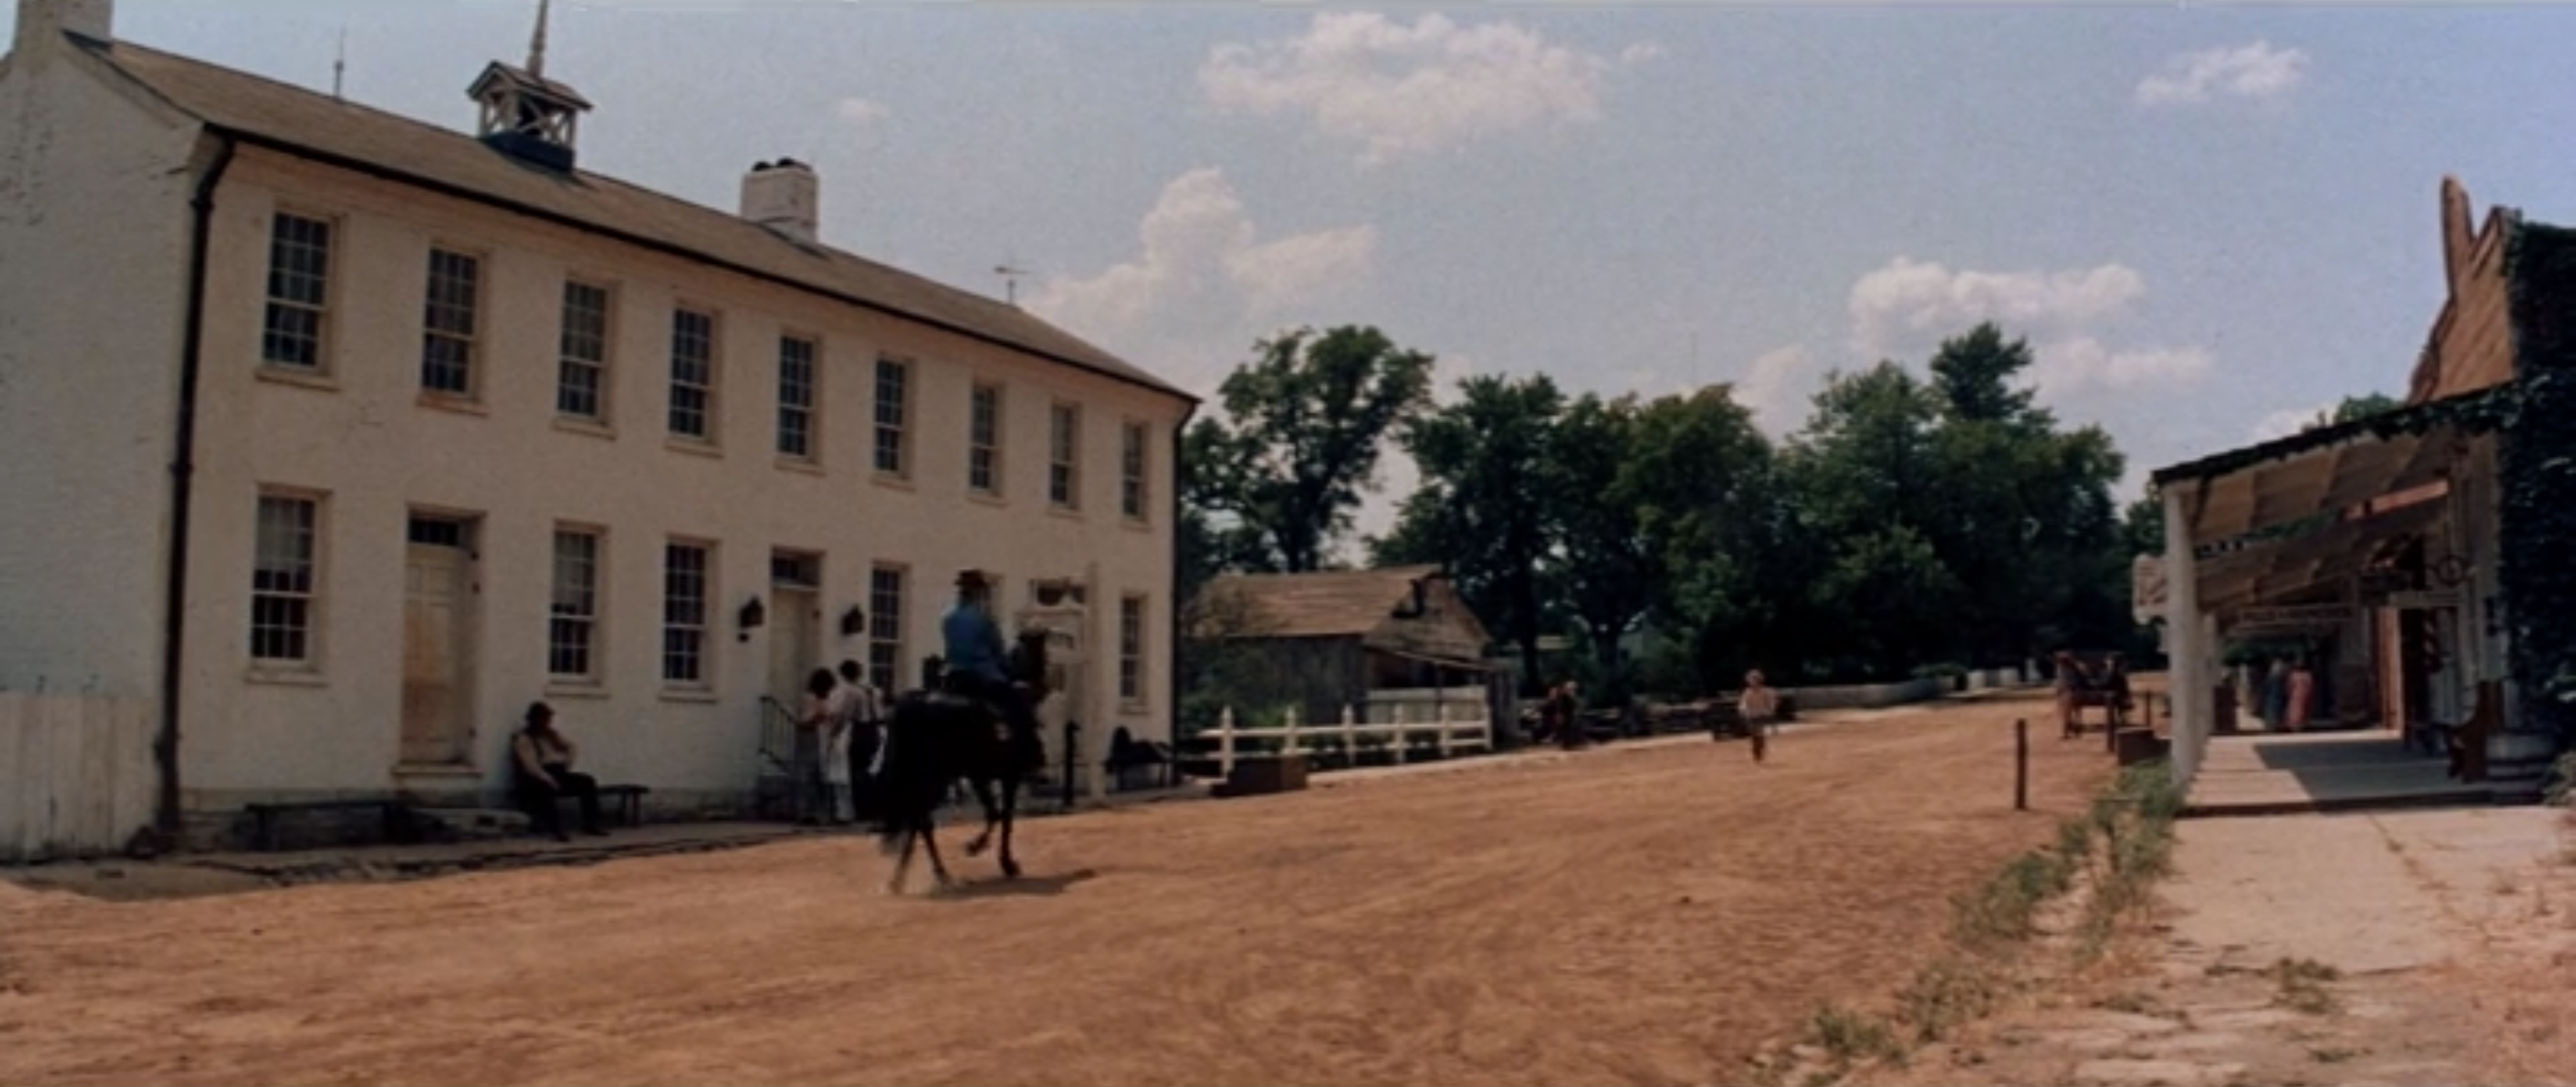 And Even Then, The Two 1970s Films Werenu0027t Shot On The Mississippi River.  In 1917, When Tom Was Played By Mary Pickfordu0027s Younger Brother, Twainu0027s  Riverside ...